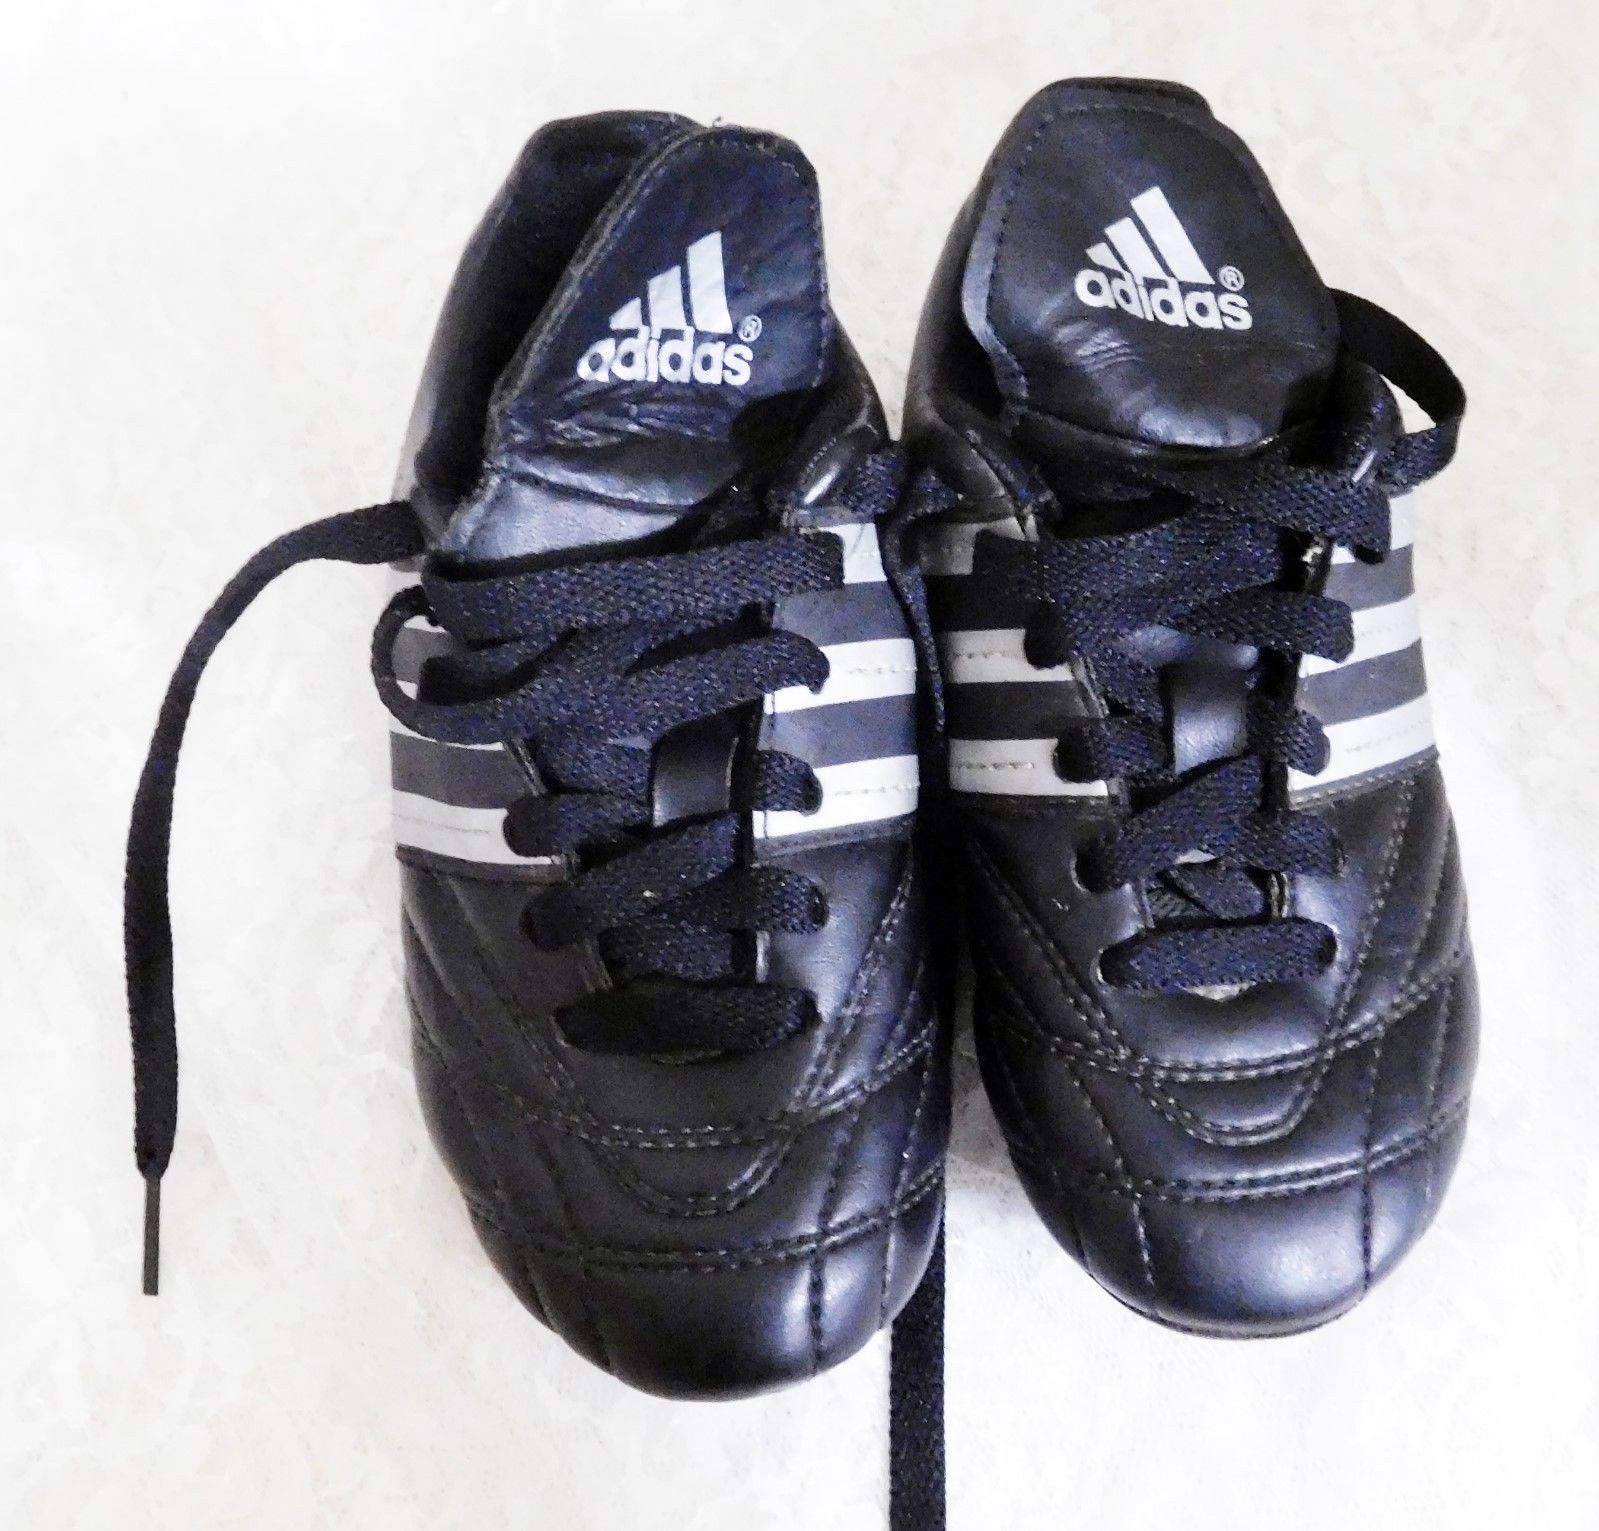 d8e72b506 Adidas Hard Ground Soccer Cleats - Size 11K and 50 similar items